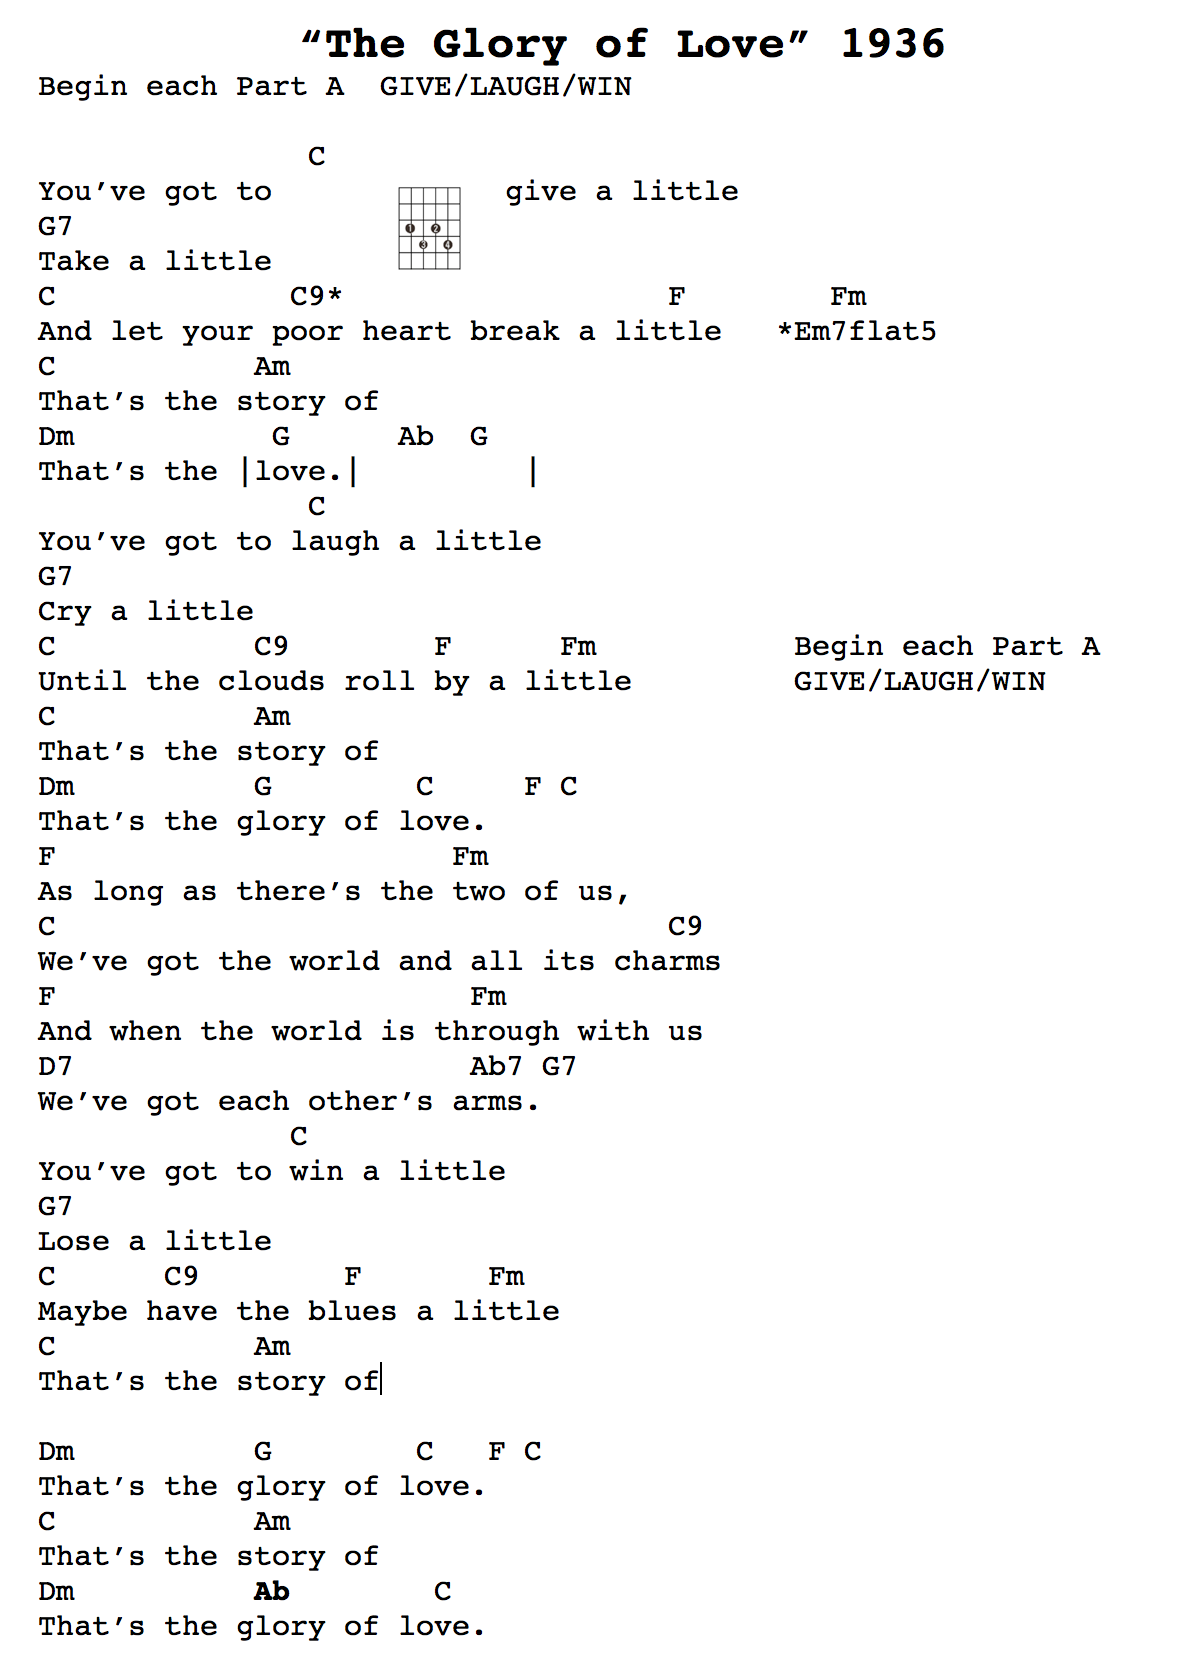 All about loving you lyrics and chords